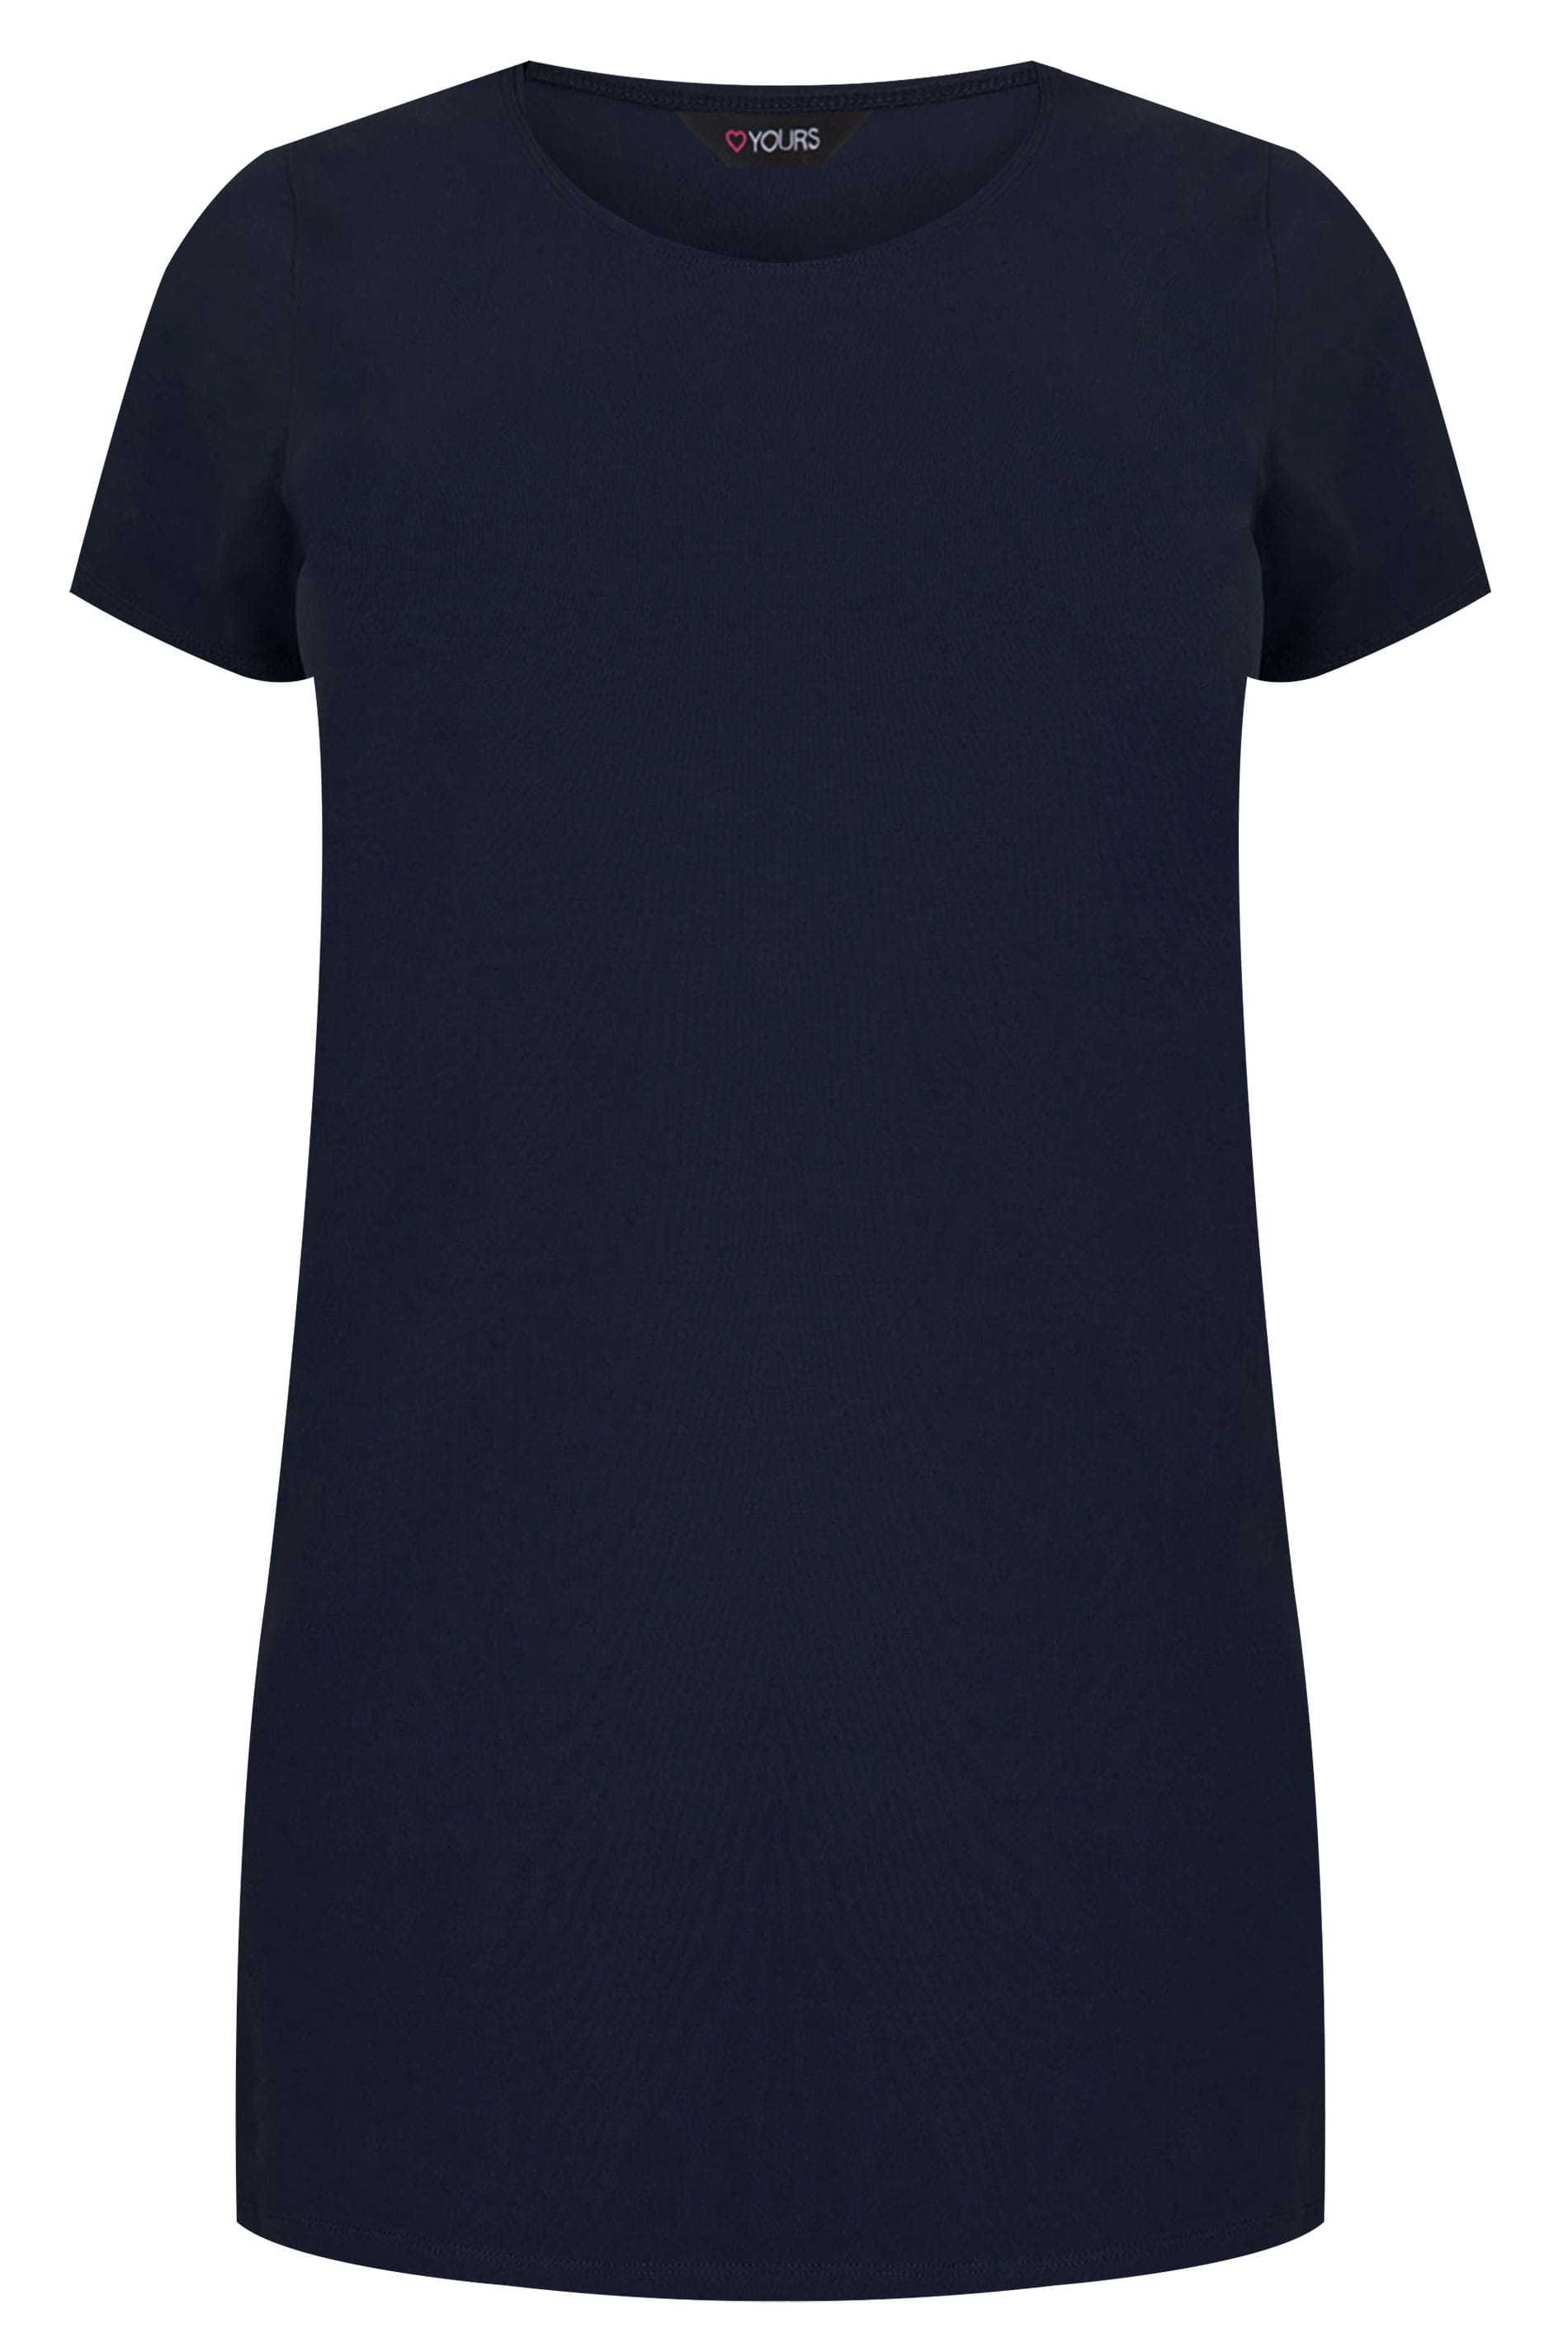 383f115d Navy Scoop Neck Longline Jersey T-Shirt, plus size 16 to 36